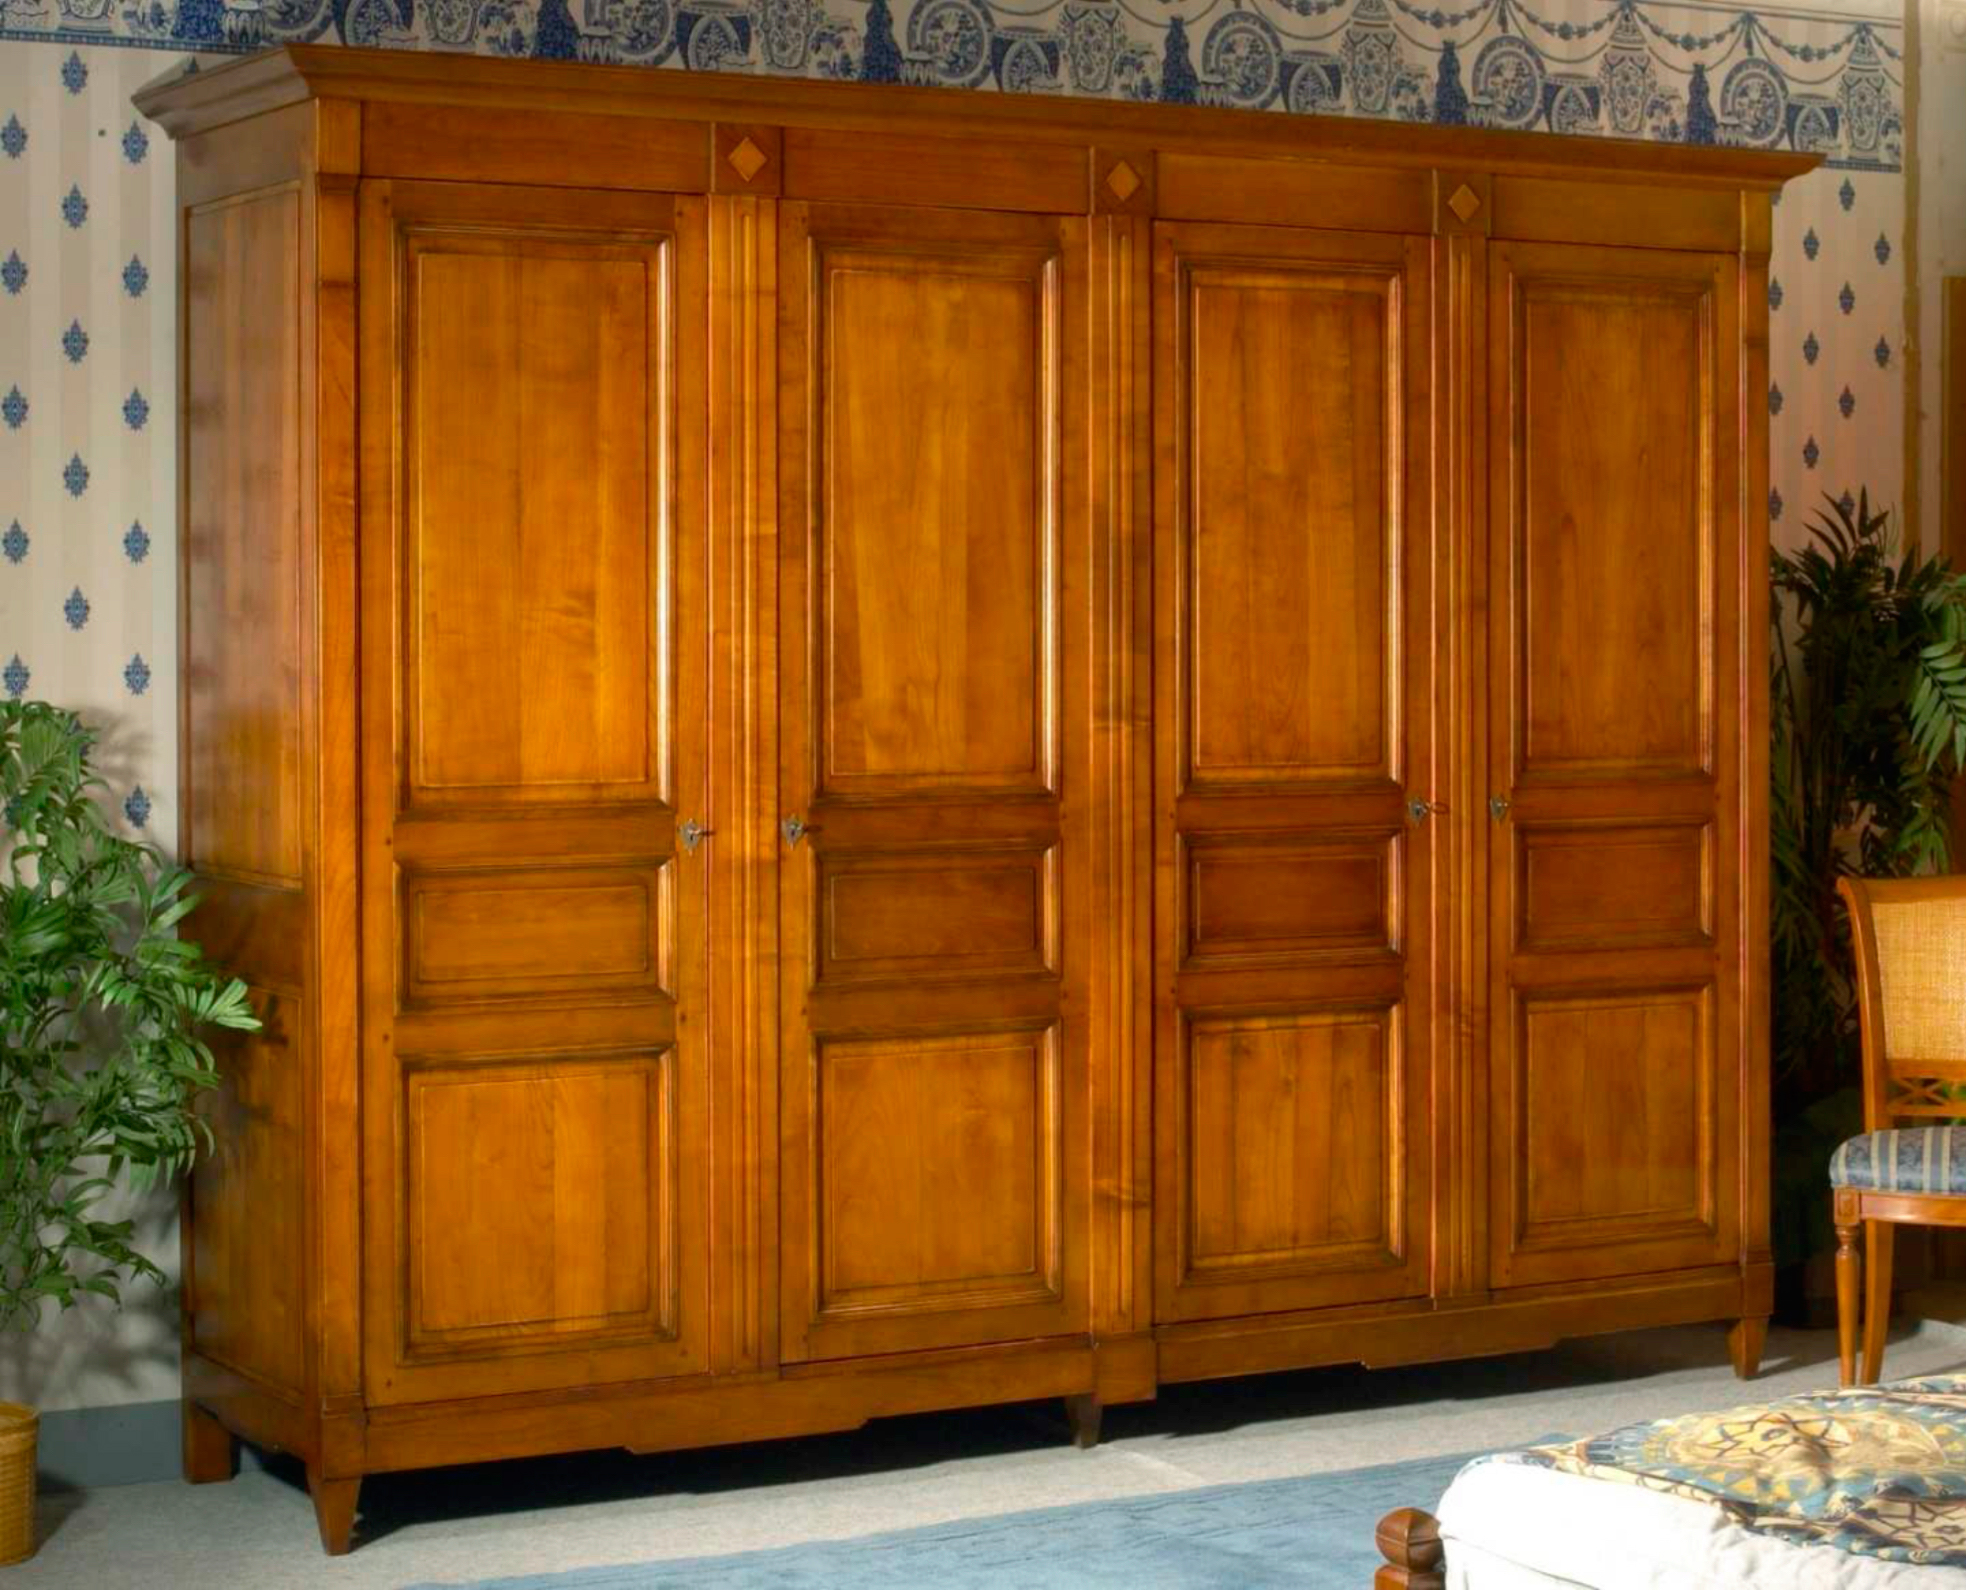 armoire en bois 4 portes. Black Bedroom Furniture Sets. Home Design Ideas